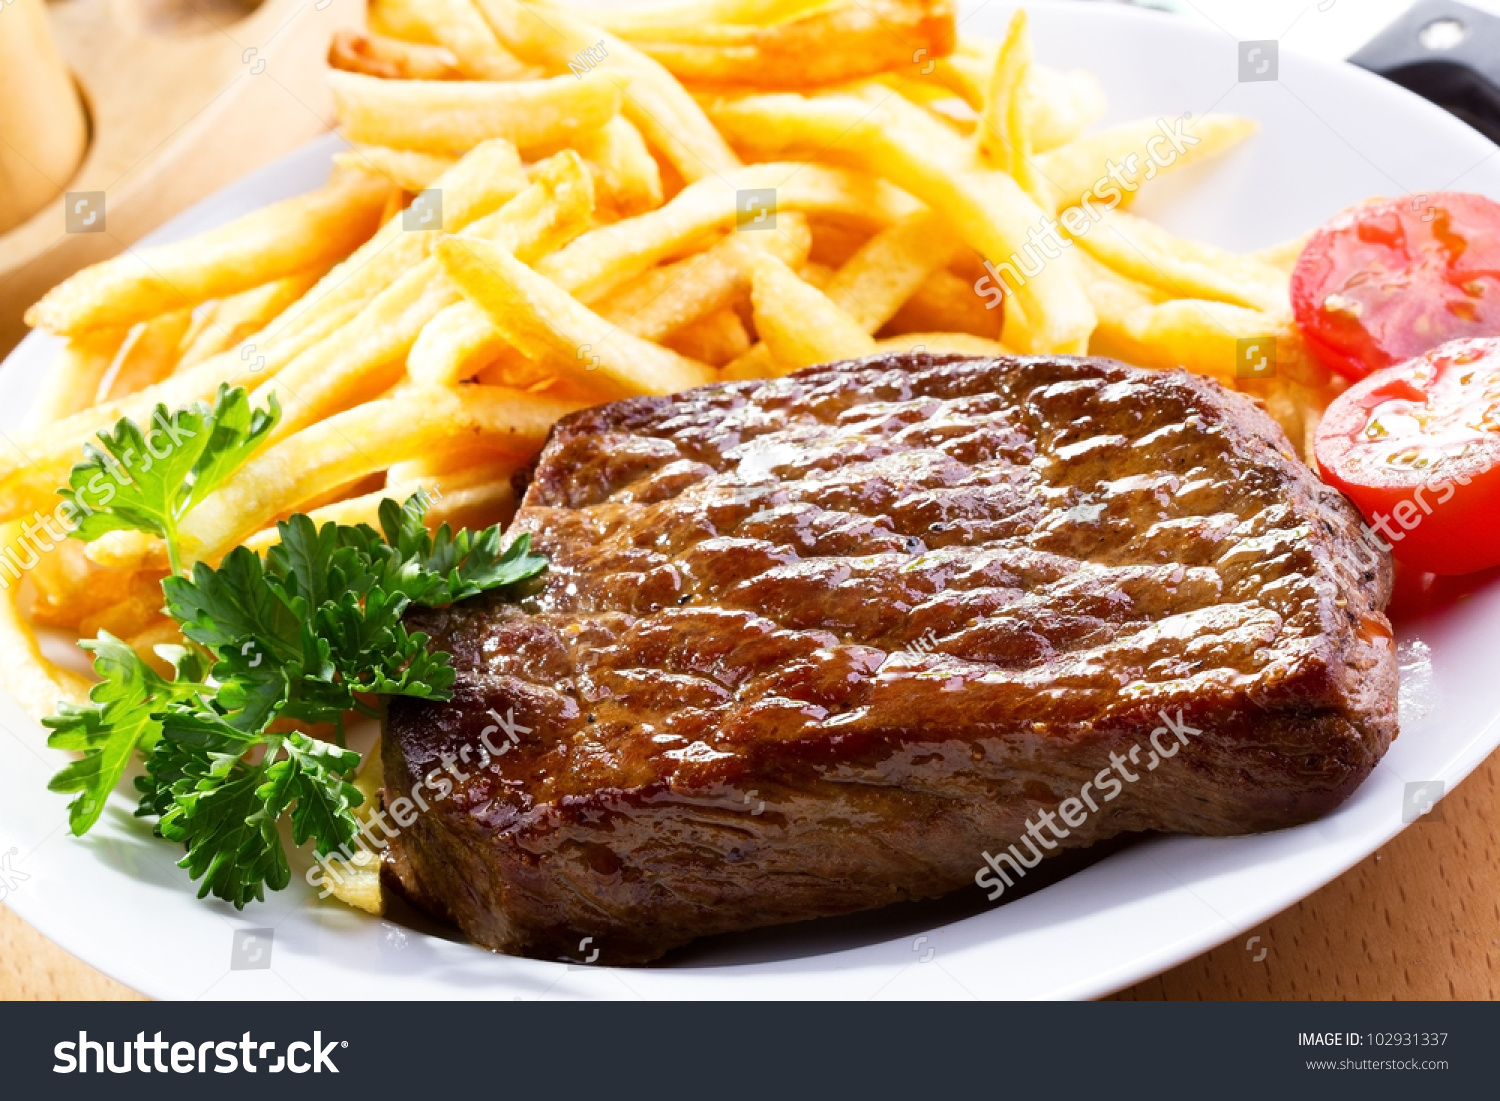 how to cook french steak